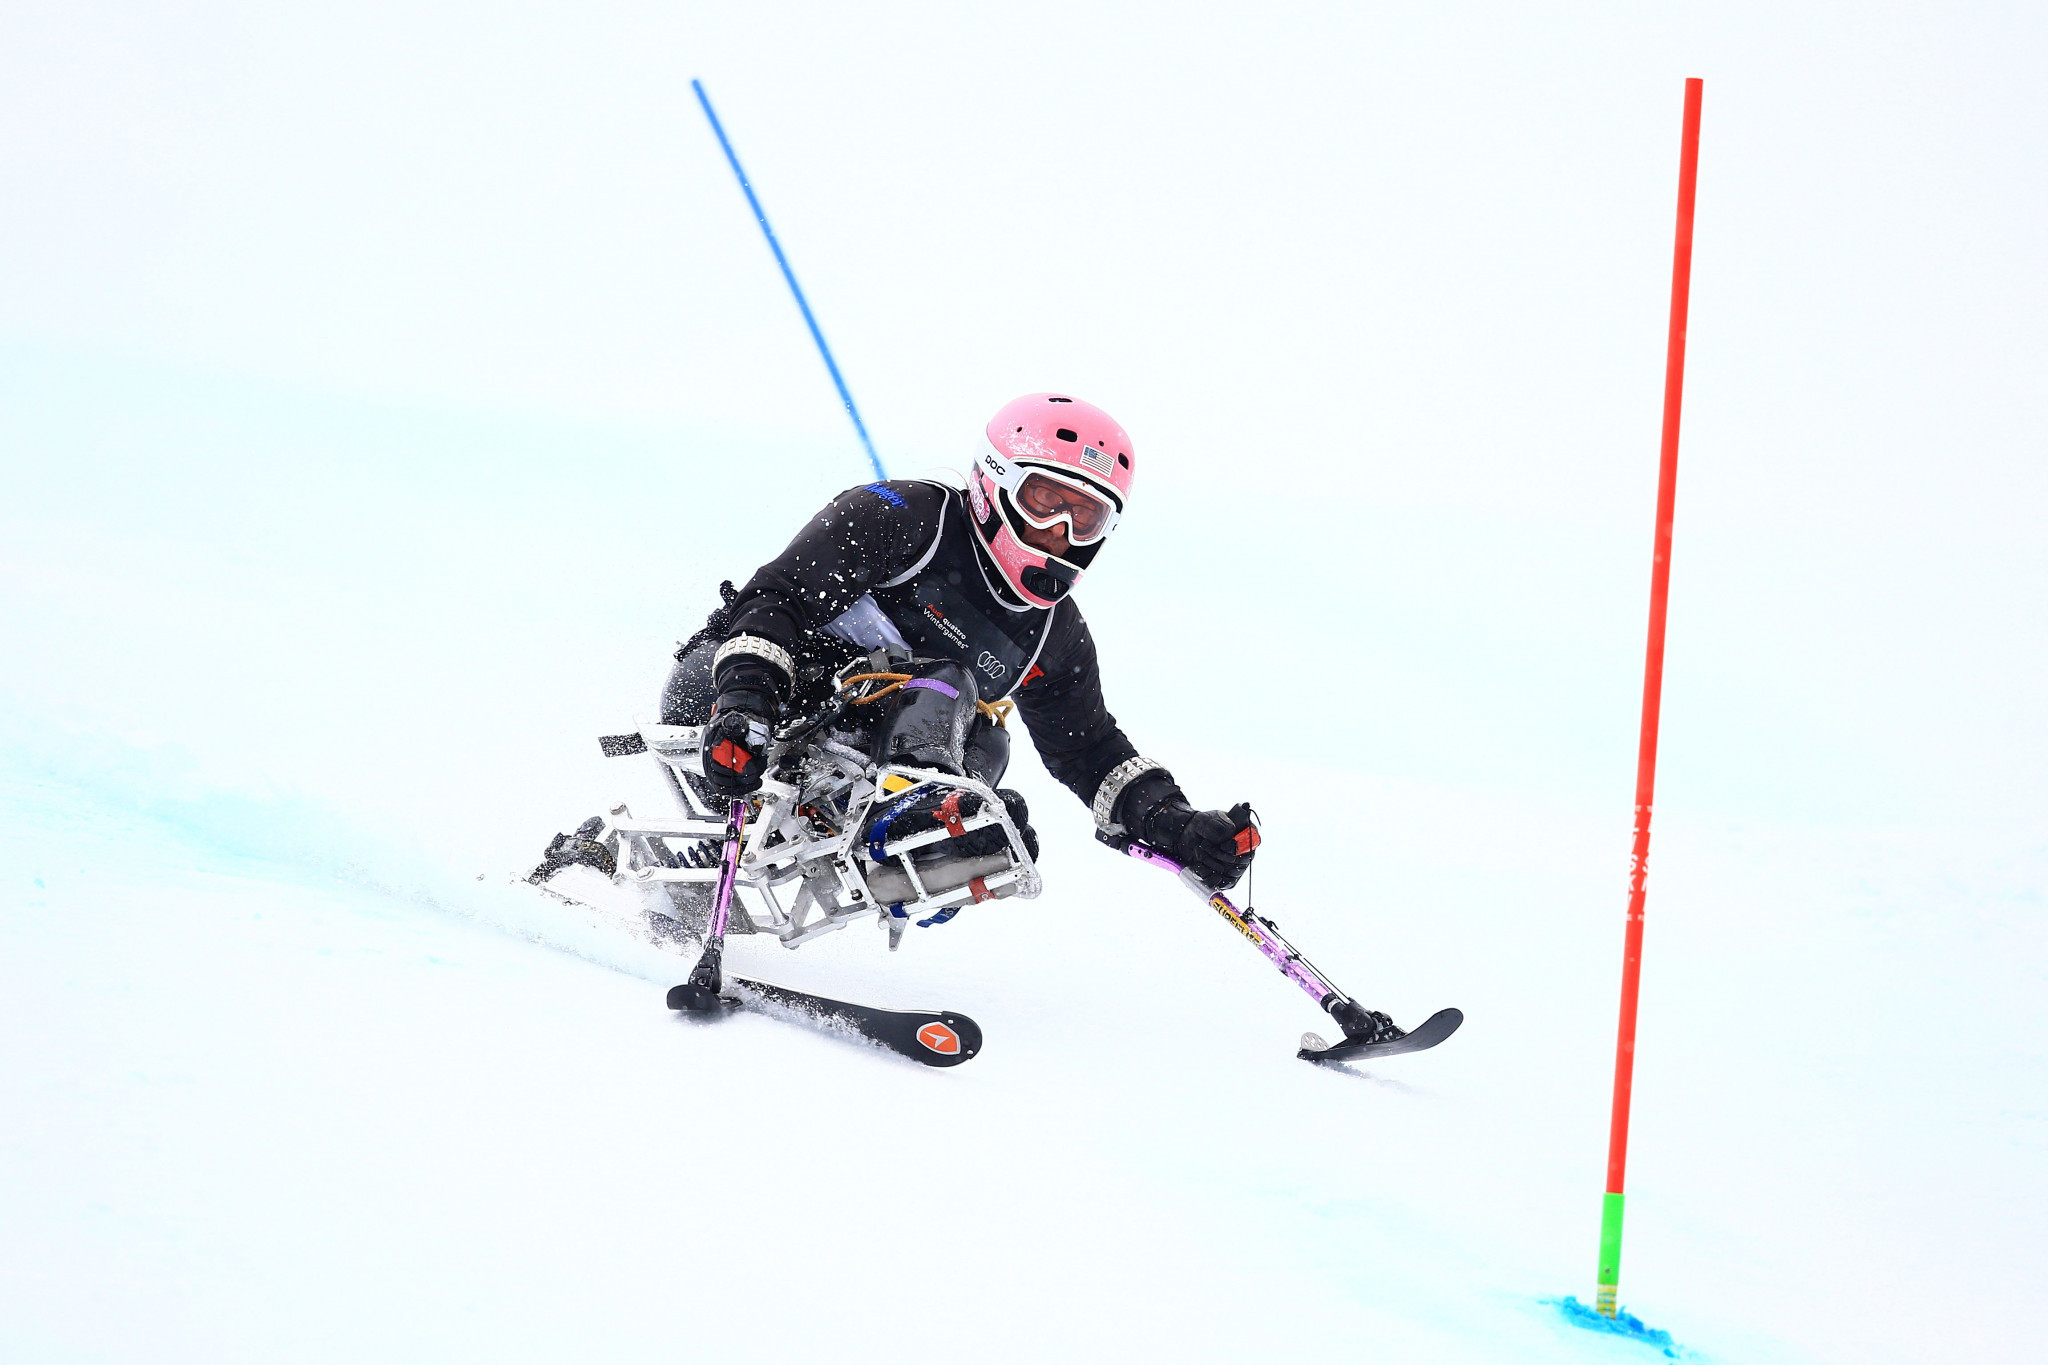 Laurie Stephens will compete in her fourth Winter Paralympics at Pyeongchang 2018 ©Getty Images